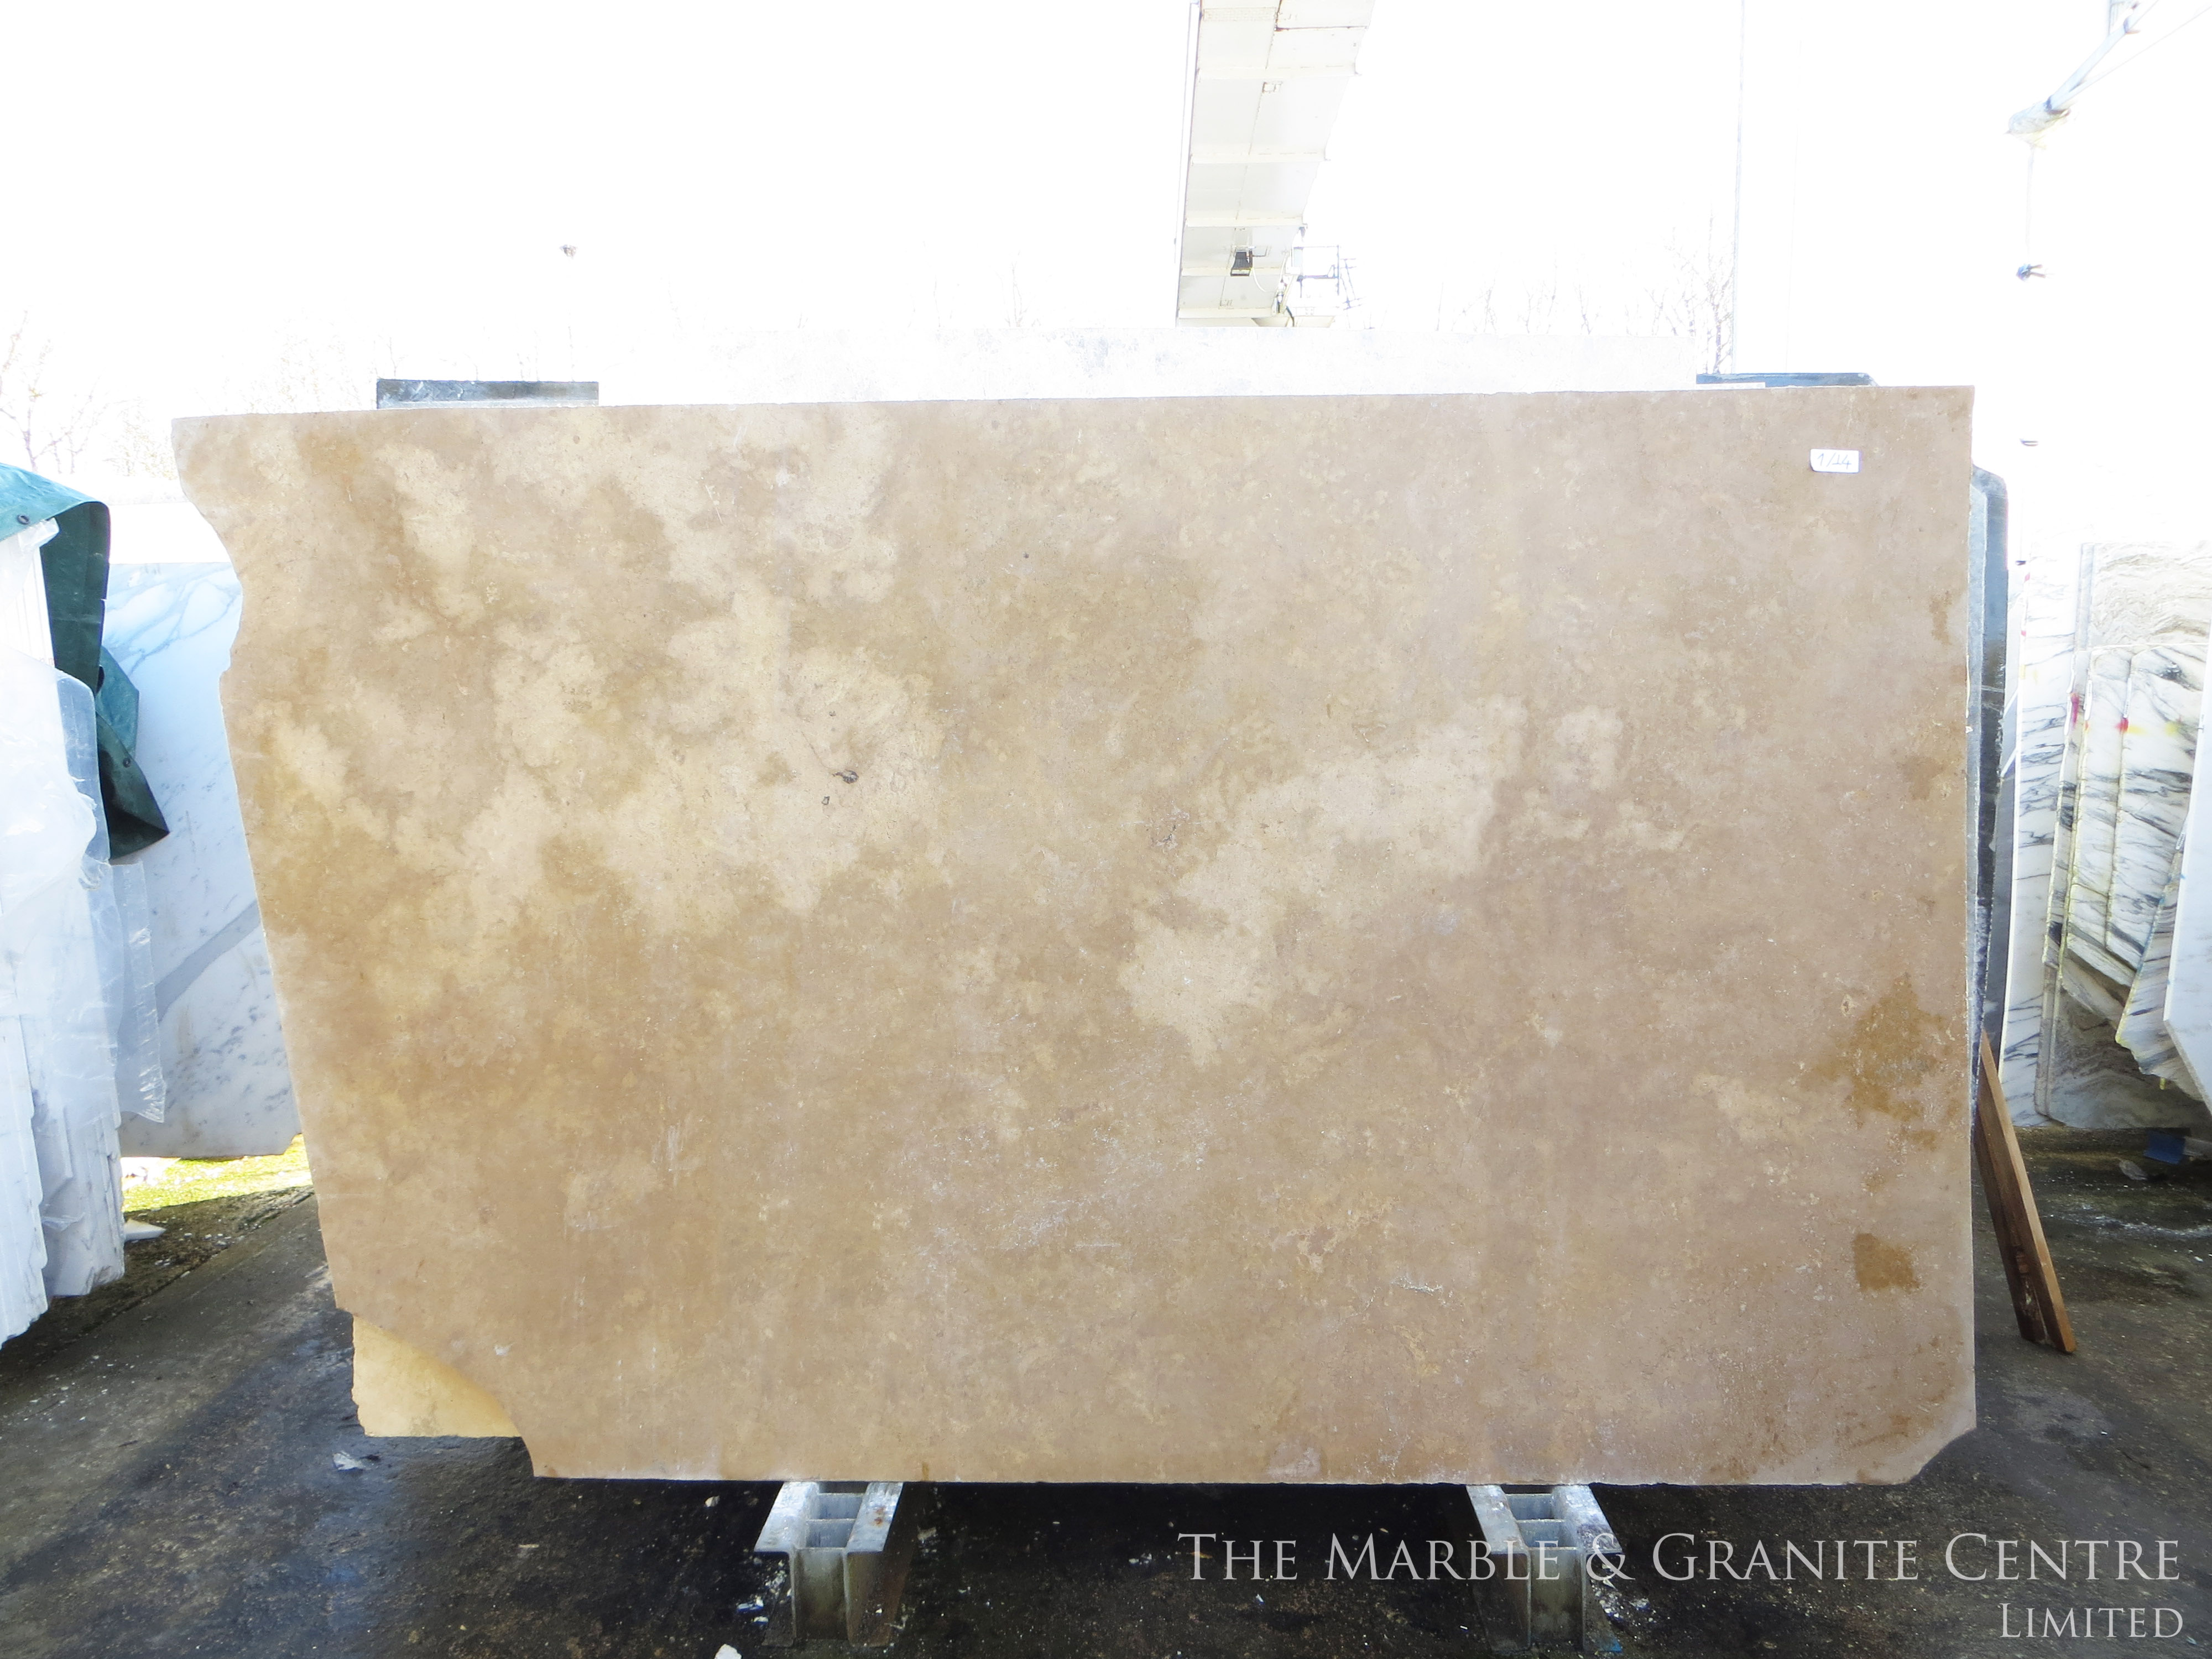 Marble Travertine Noce Honed 20 mm [91047]